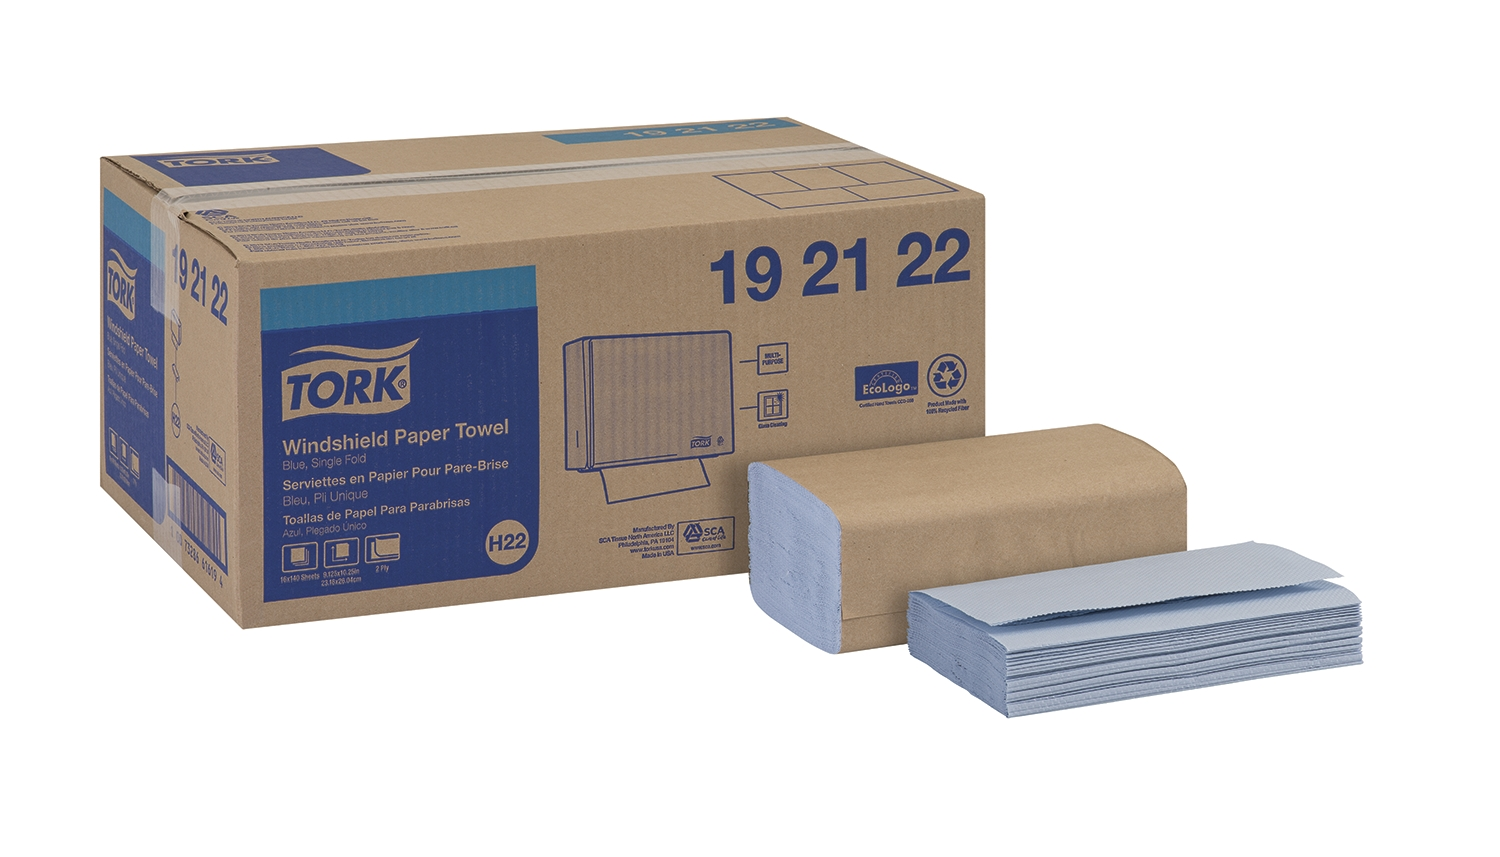 10073286616194 192122 - Tork Universal Windshield Towel 320, Singlefold, 2-Ply, Blue